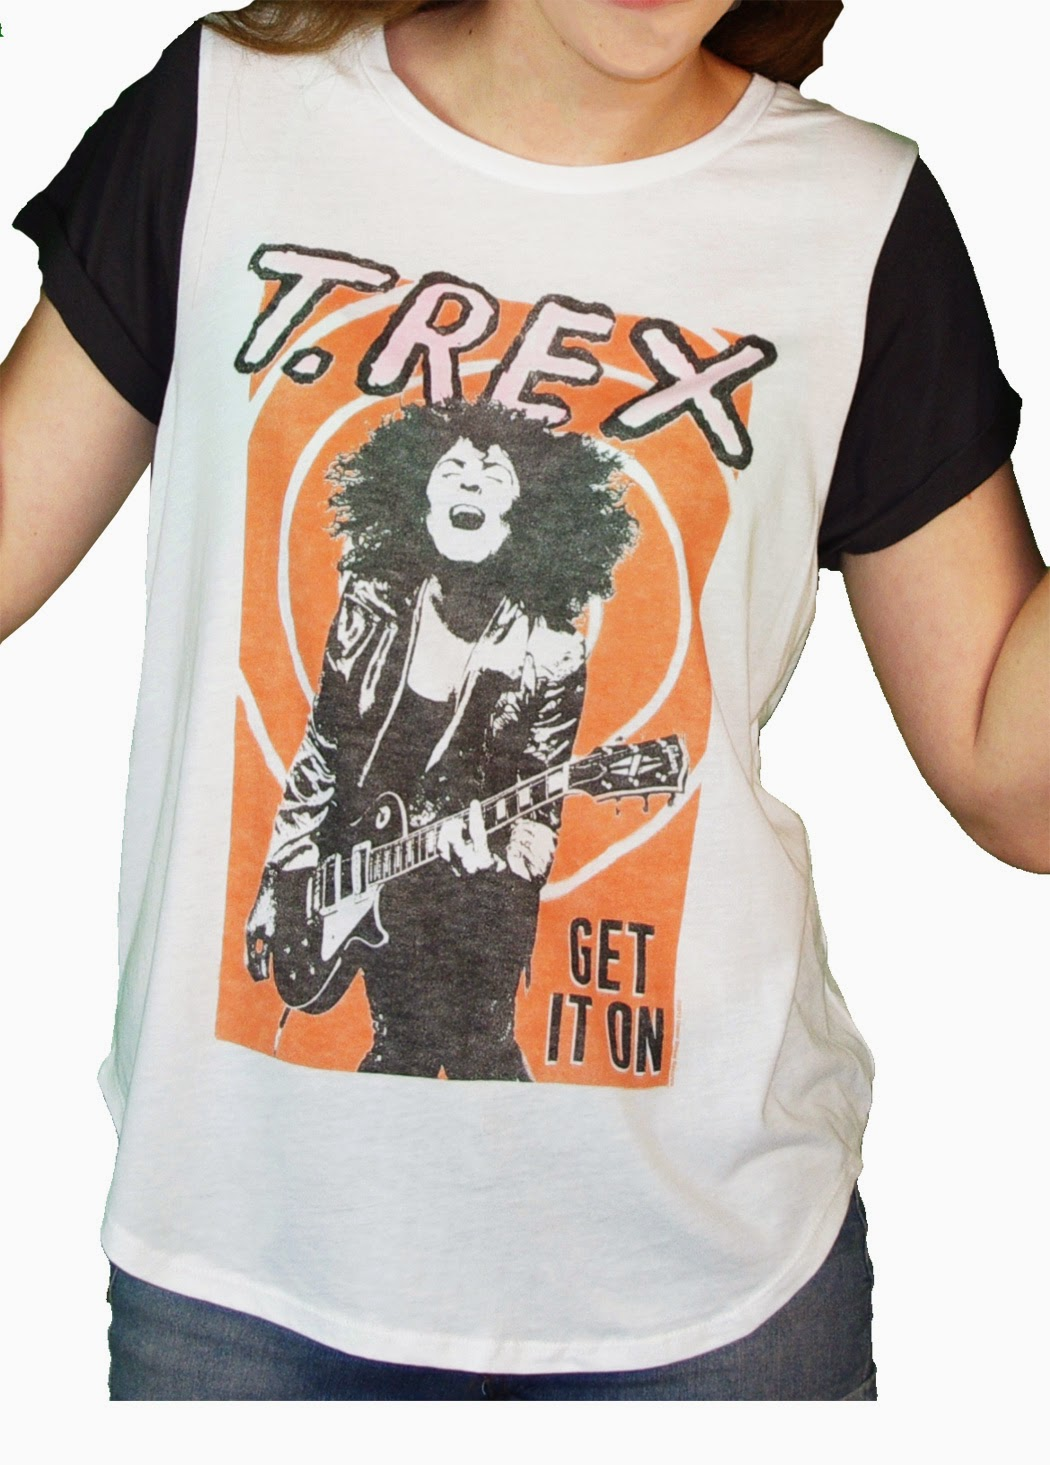 http://www.oldschooltees.com/T-Rex-Shirts-s/323.htm